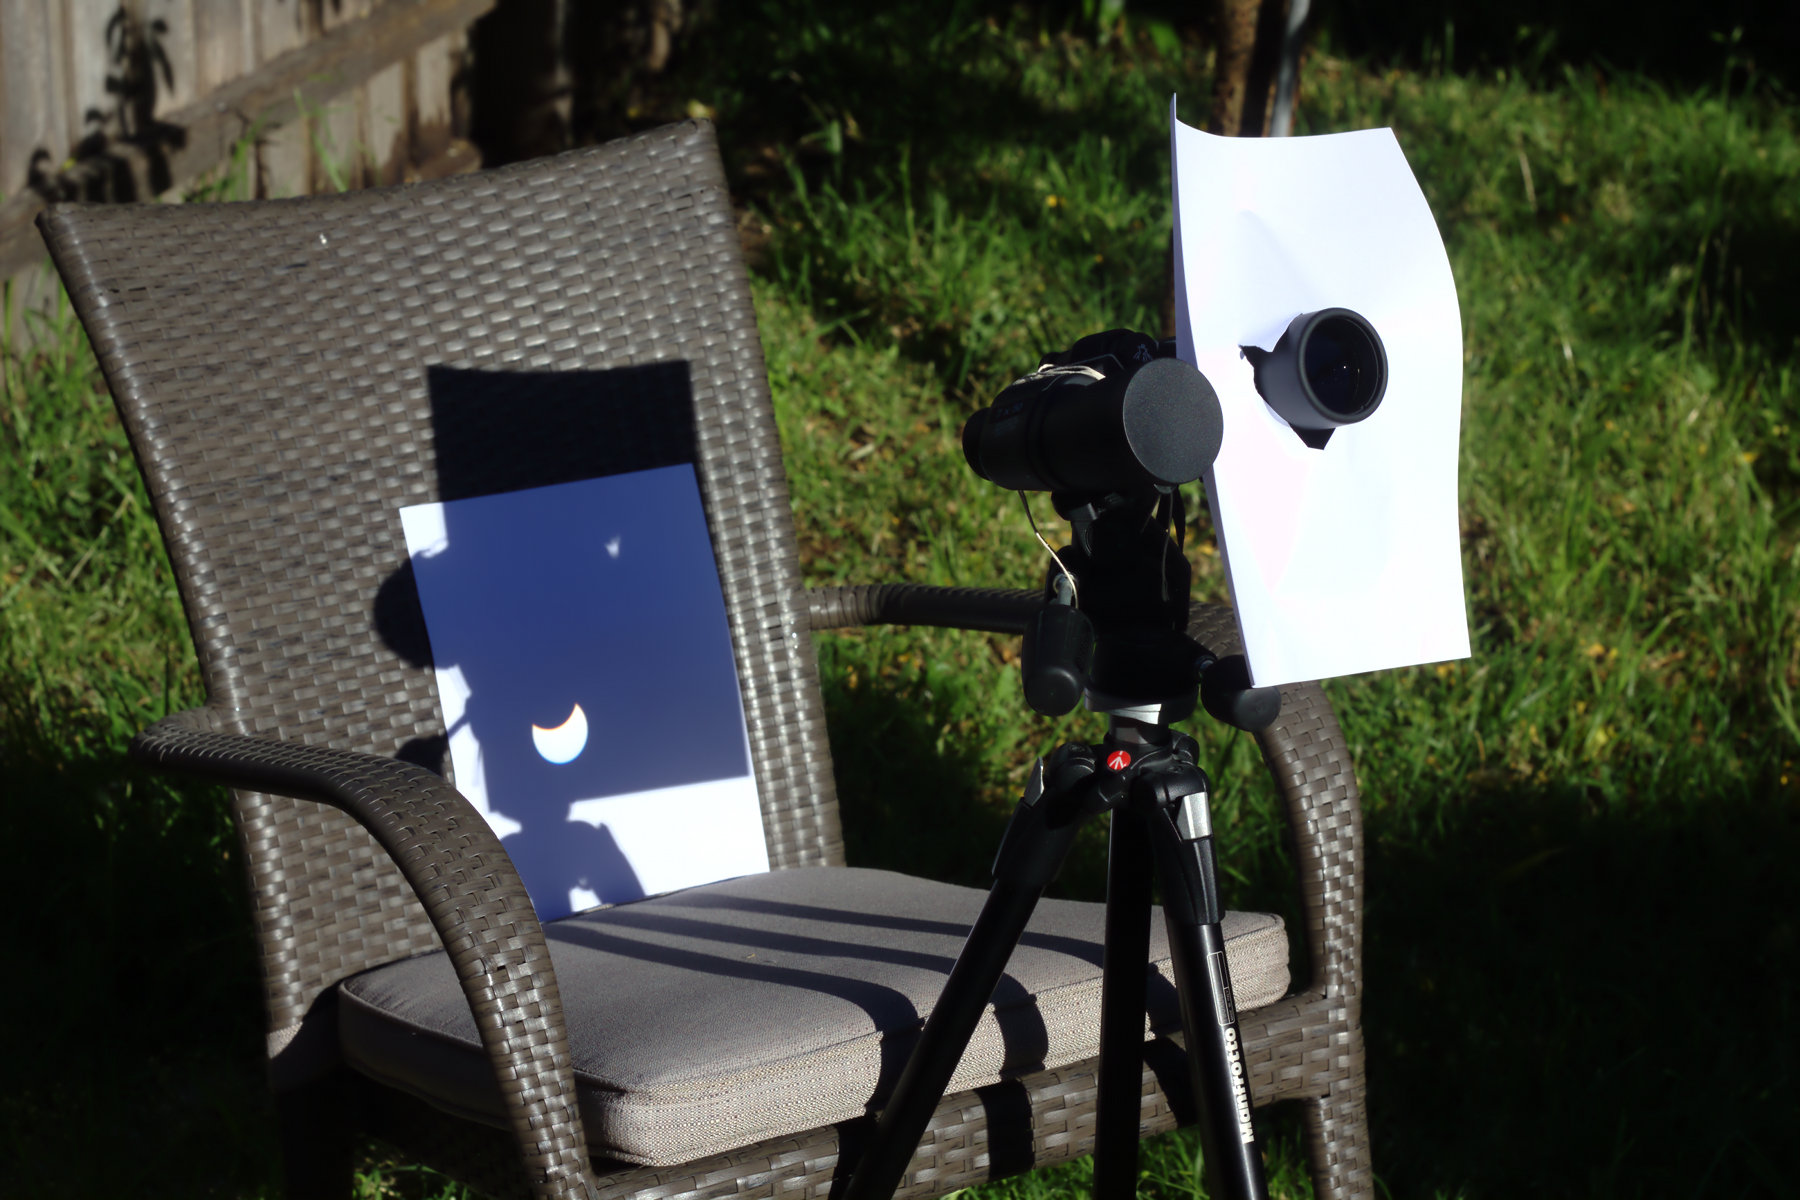 solar projection using a telescope is one way to observe the eclipse safely.